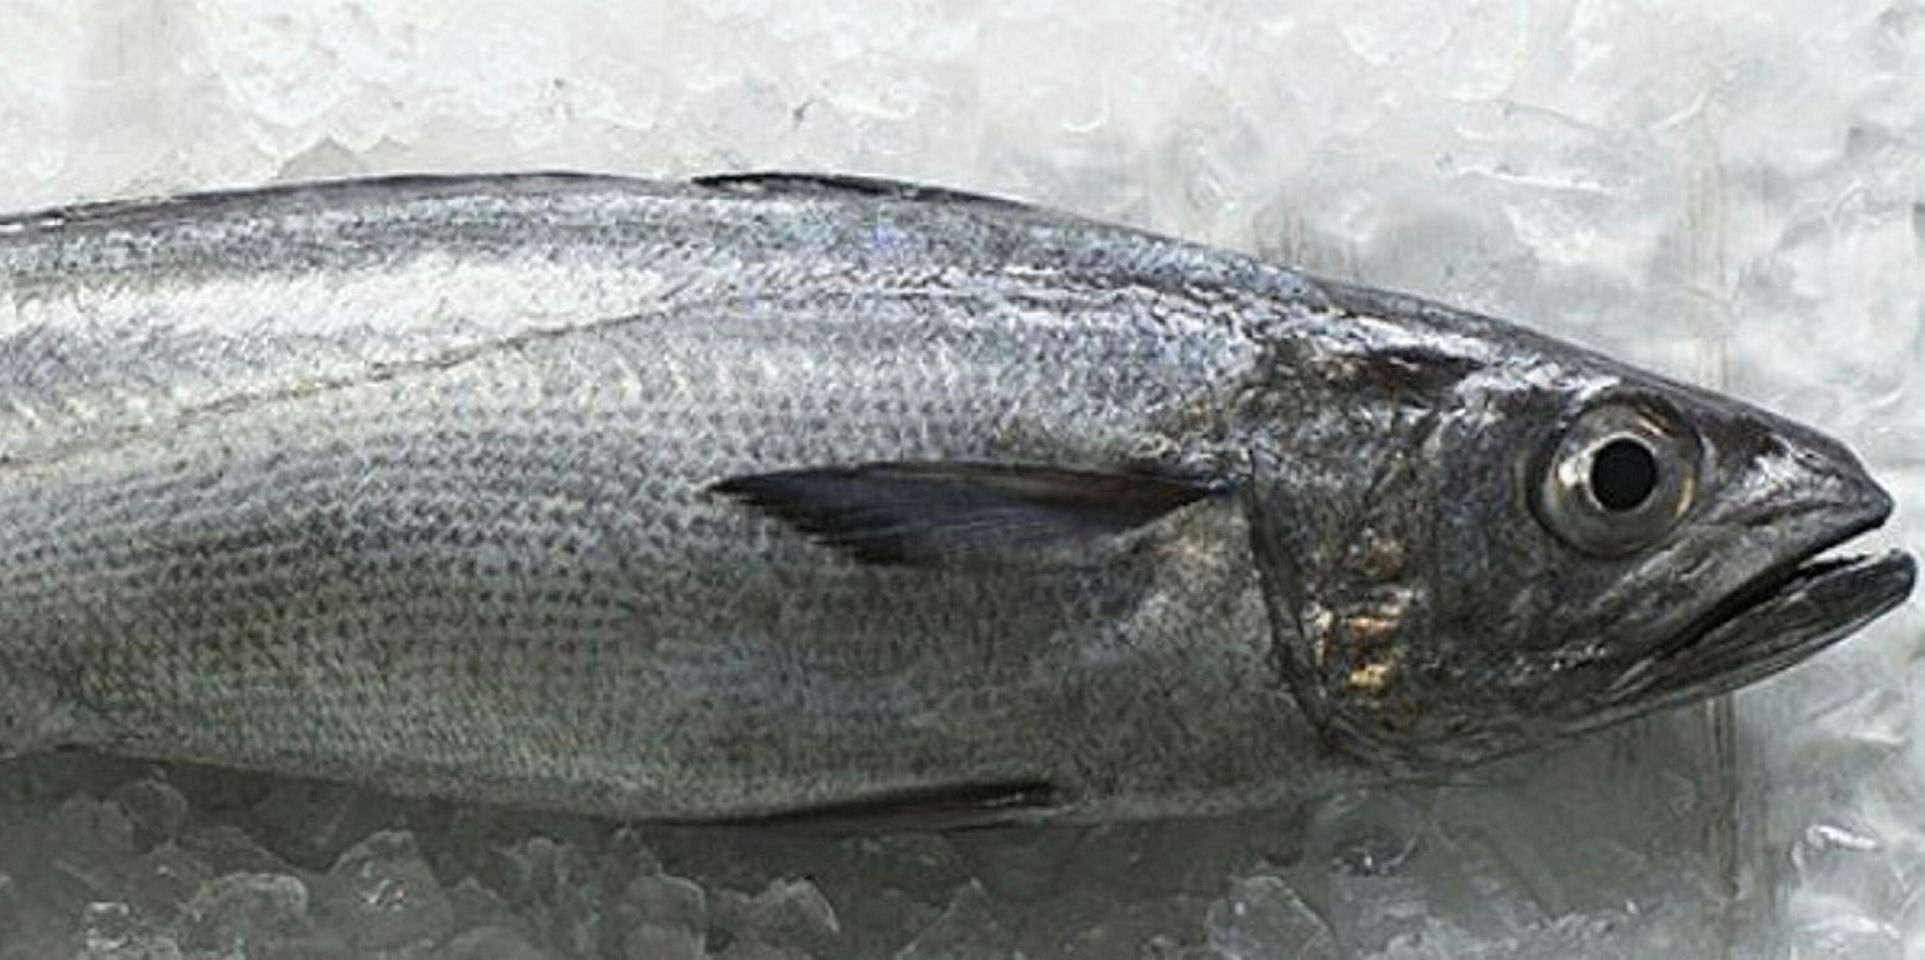 NZ fishing tech gets approval for hoki, hake, and ling | Intrafish